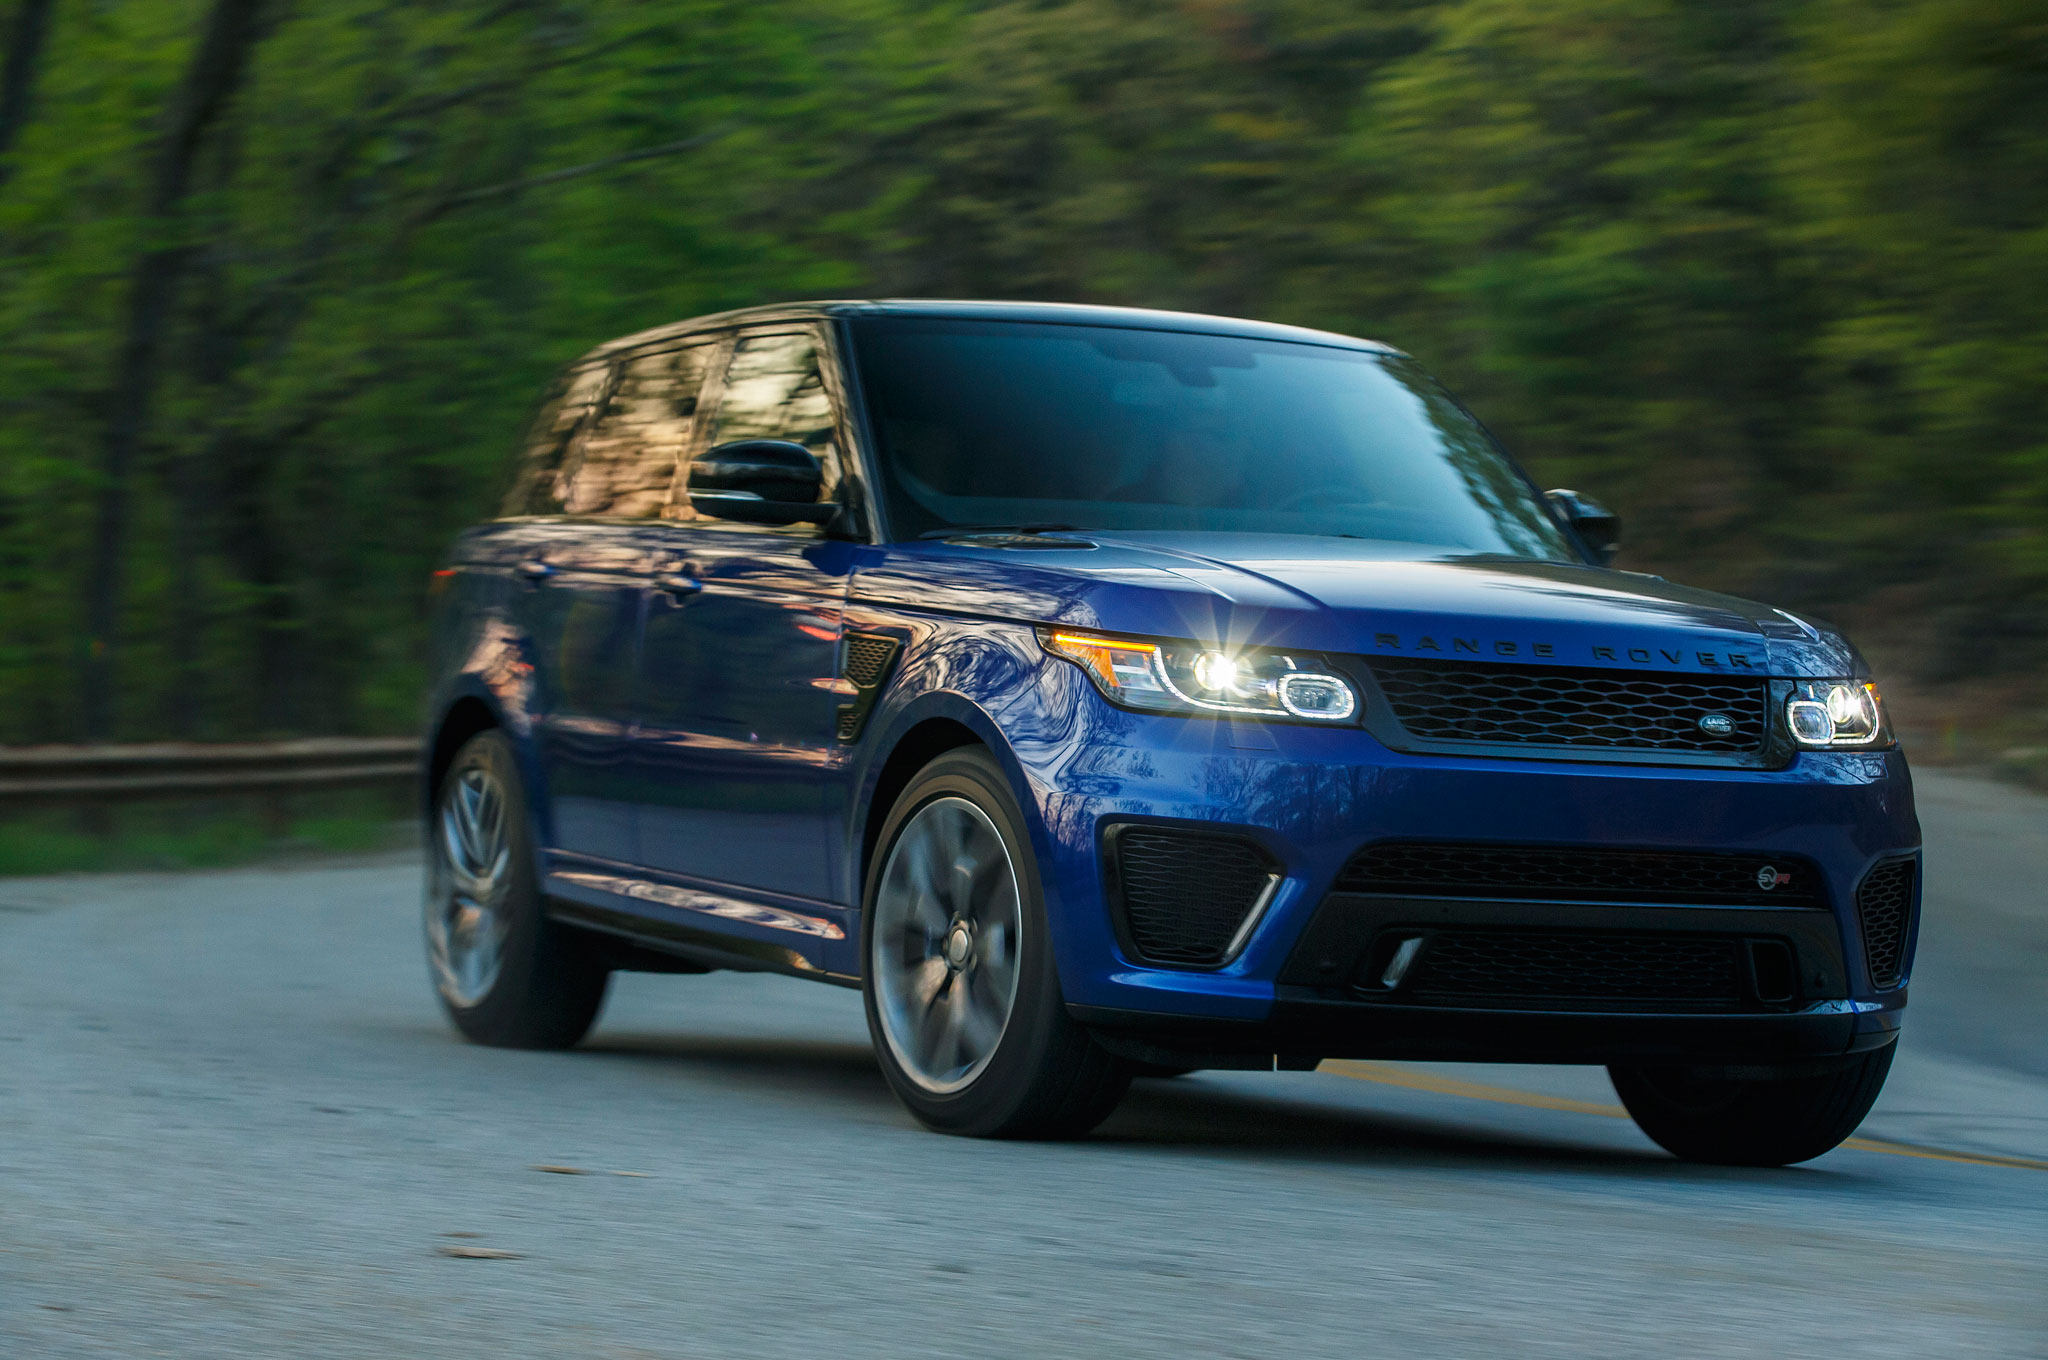 2015 land rover range rover sport svr review automobile magazine. Black Bedroom Furniture Sets. Home Design Ideas